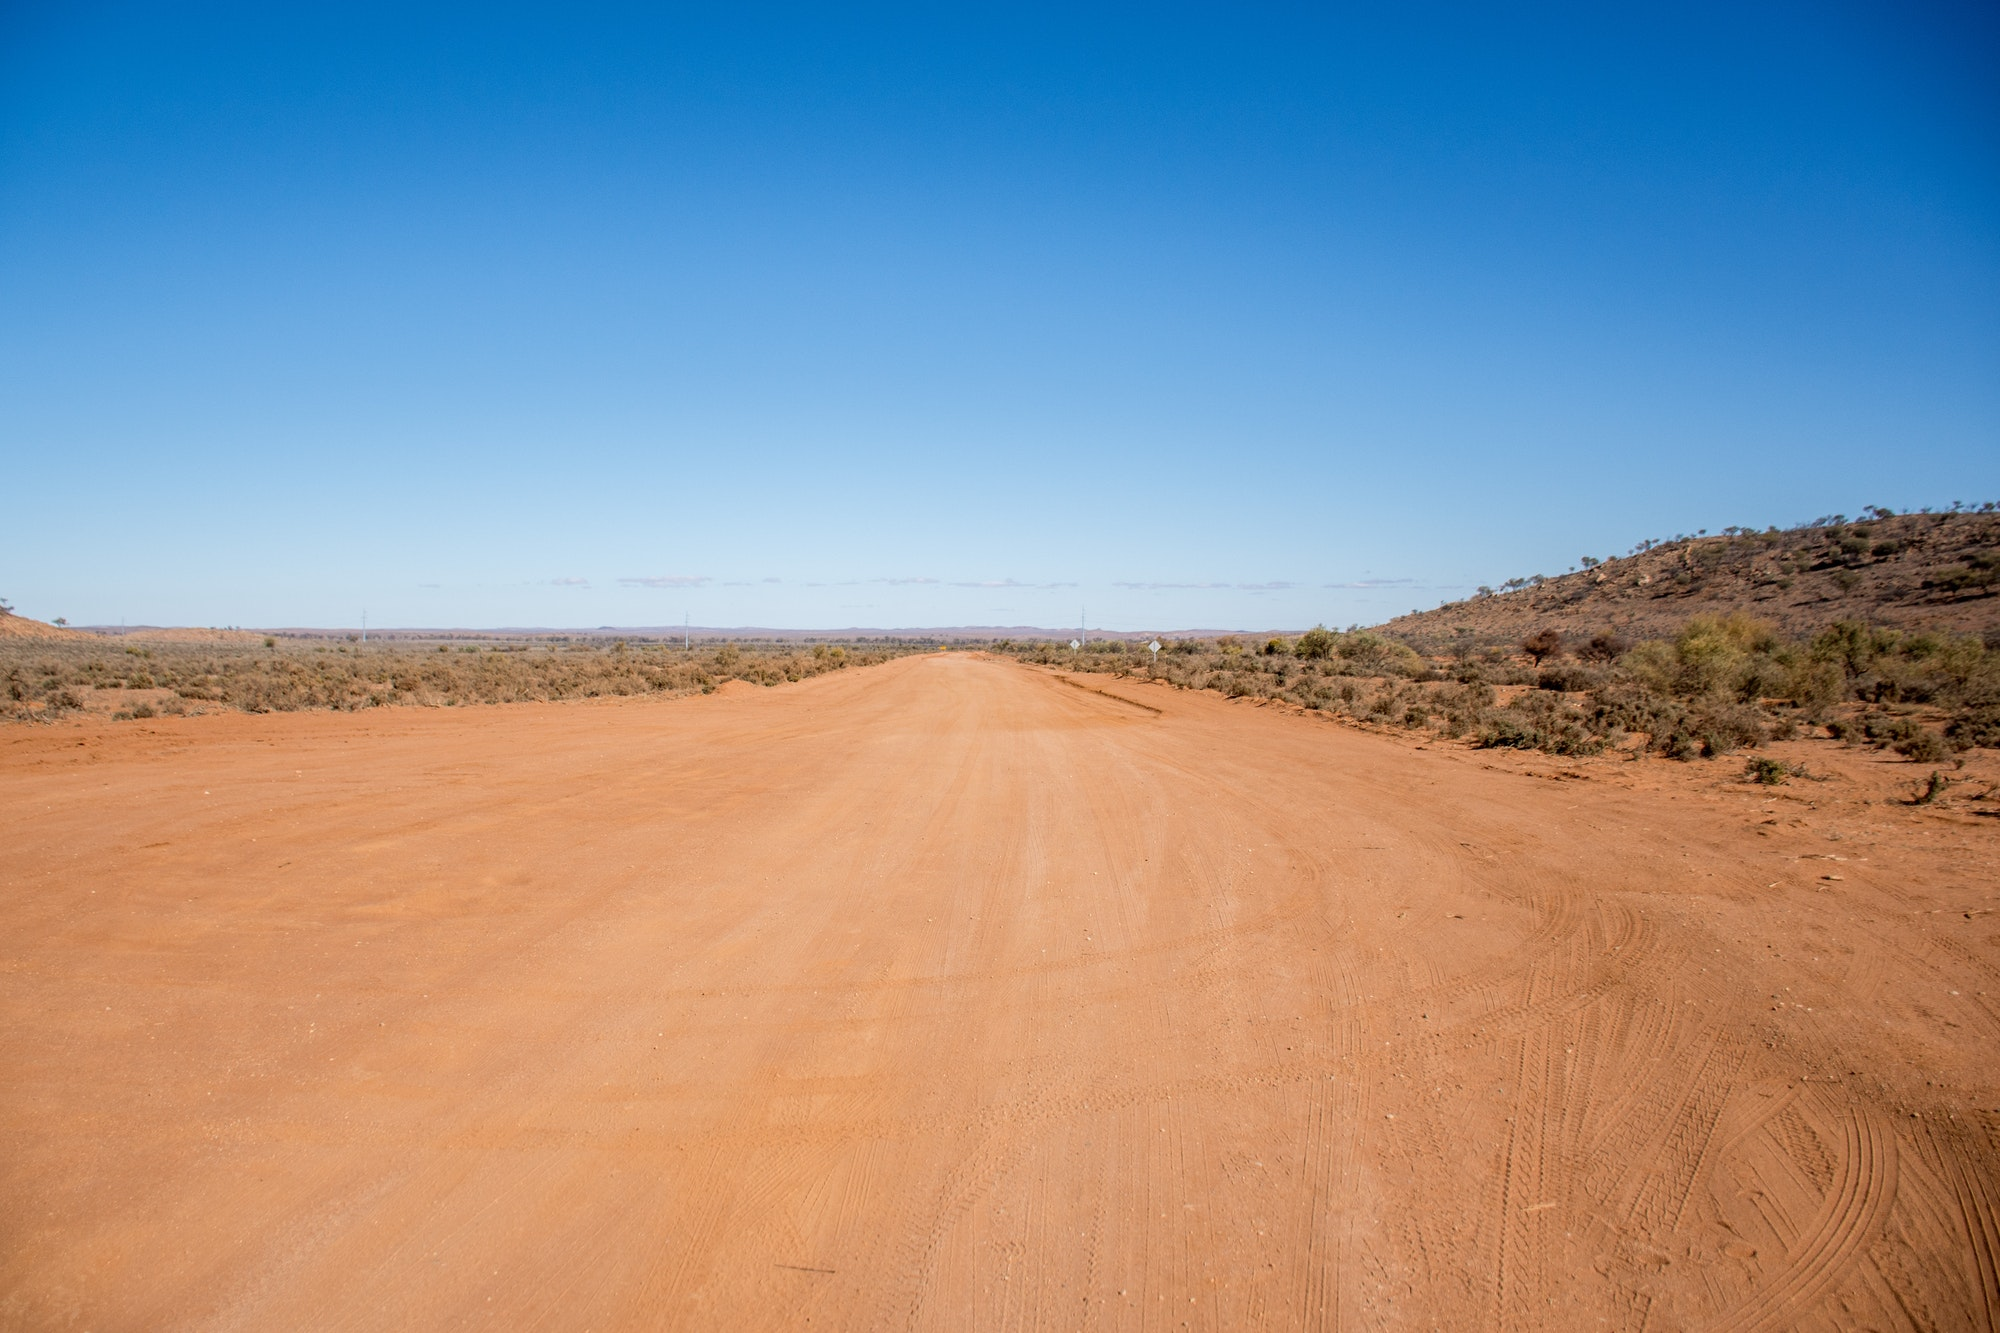 An outback country road near Broken Hill, New South Wales, Australia